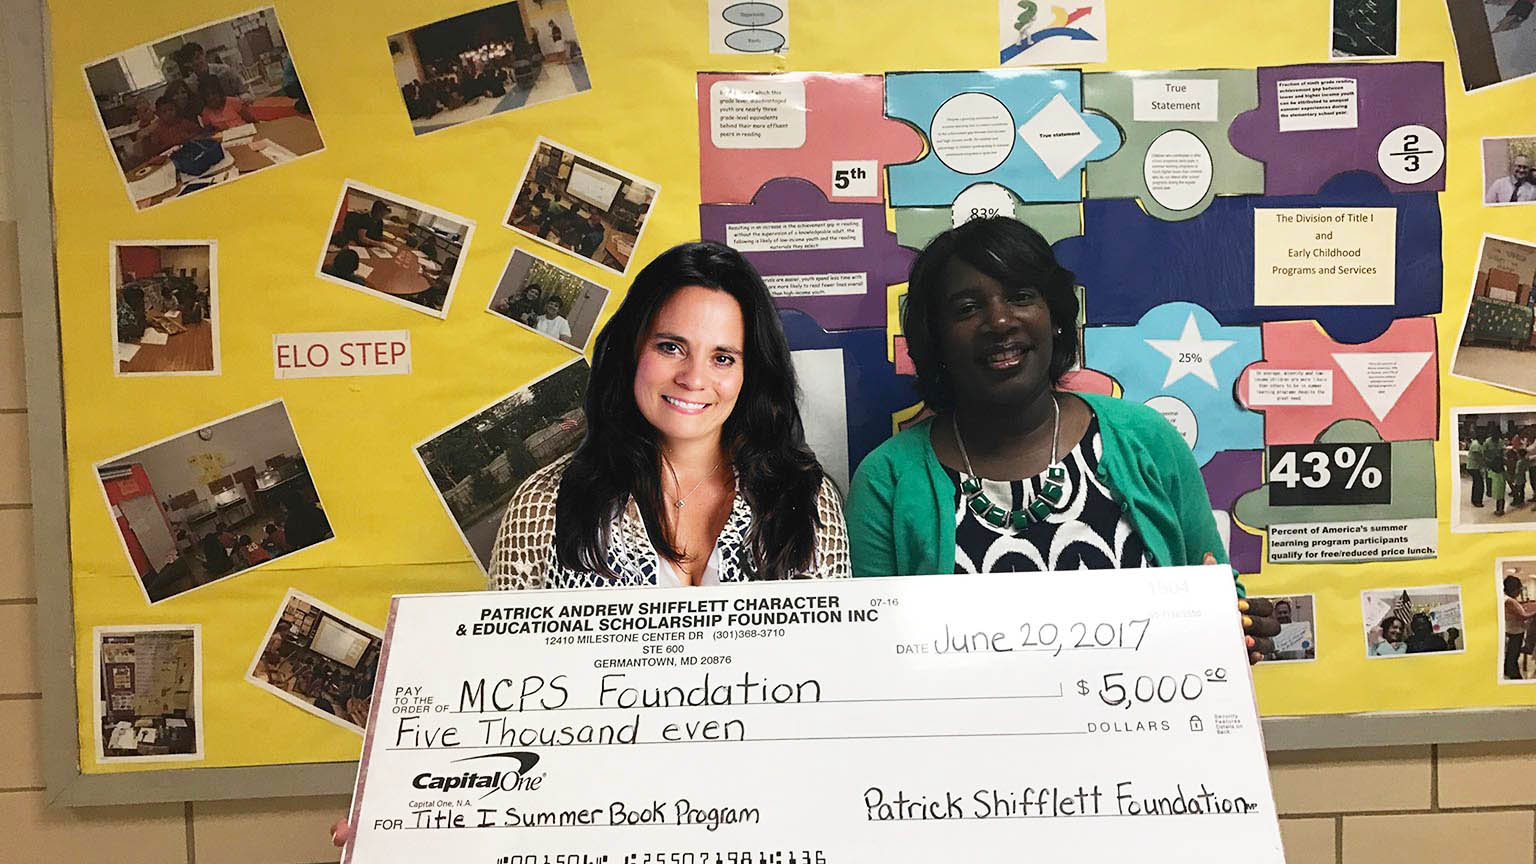 mcps-foundation-o